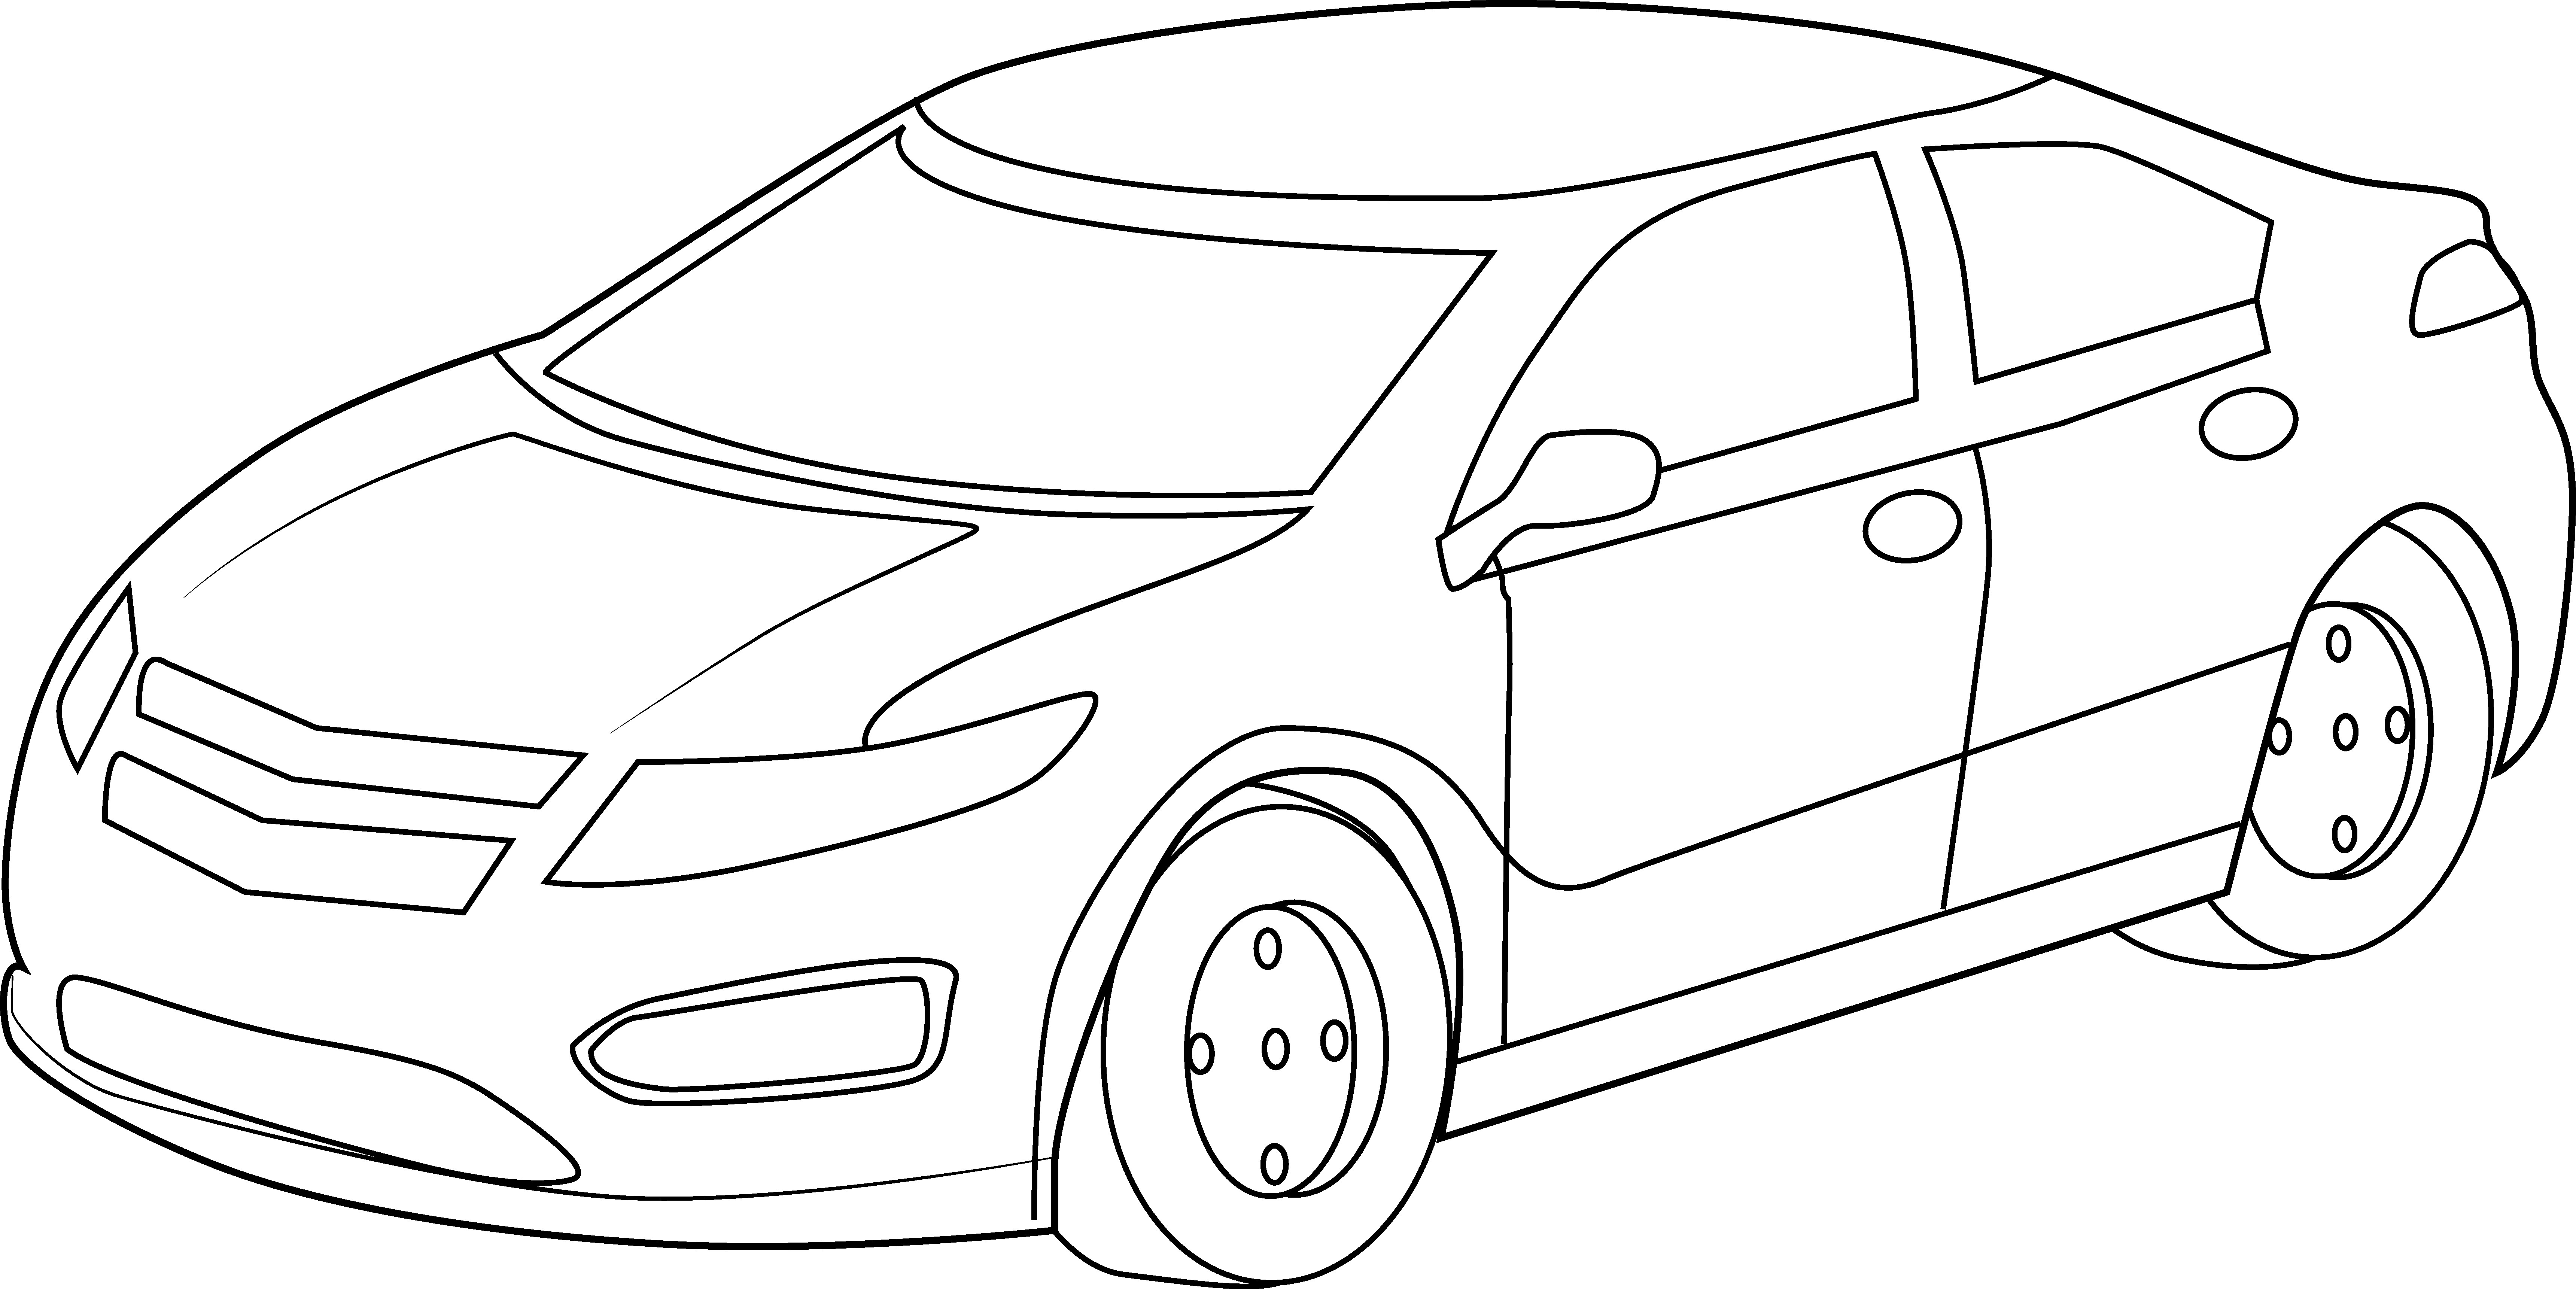 Clipart cars outline. Car black and white